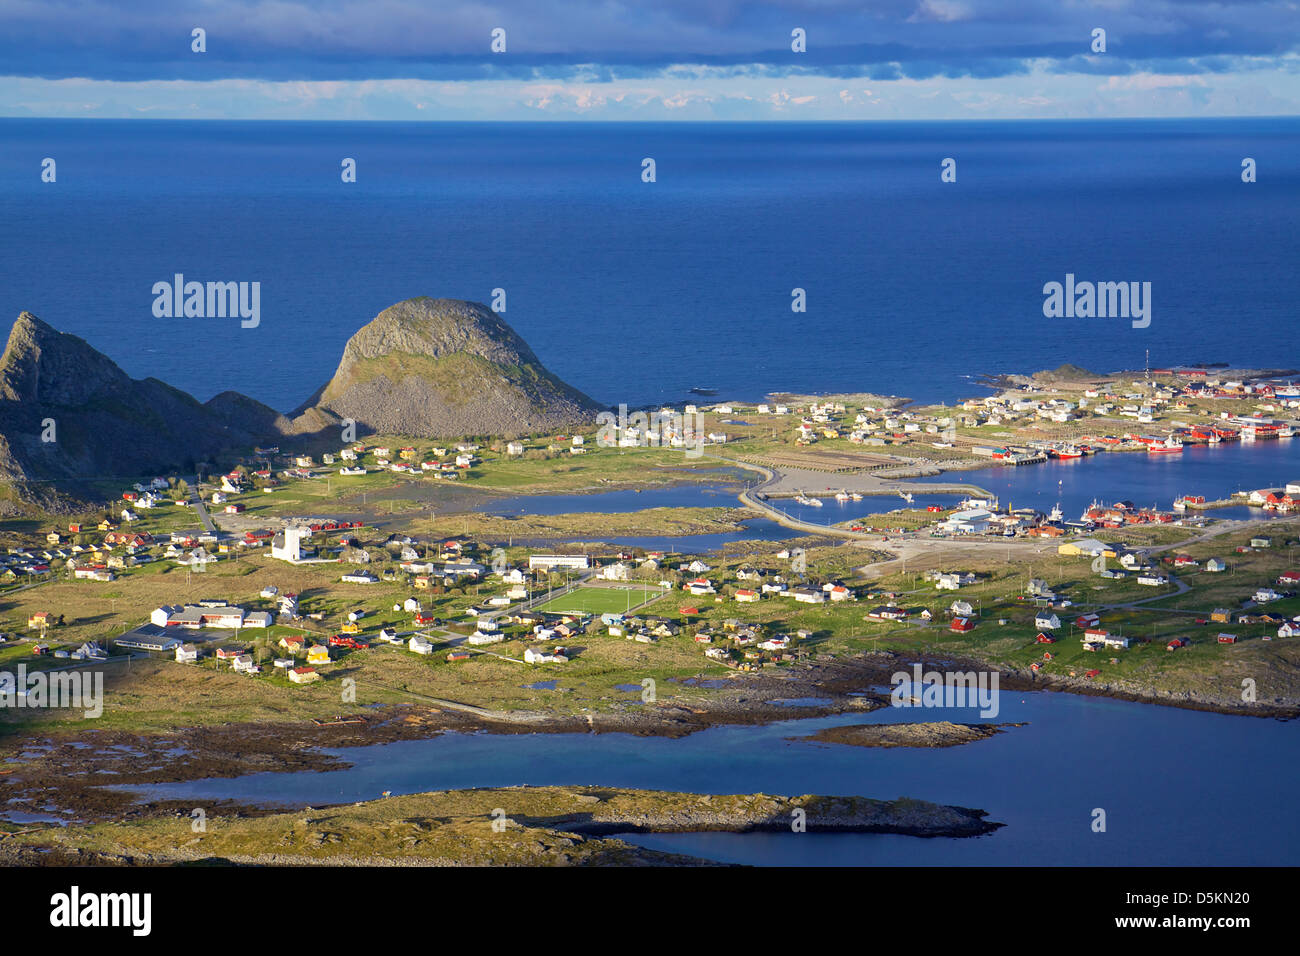 Aerial view of picturesque traditional norwegian fishing town of Sorland on island of Vaeroy, Lofoten, Norway - Stock Image